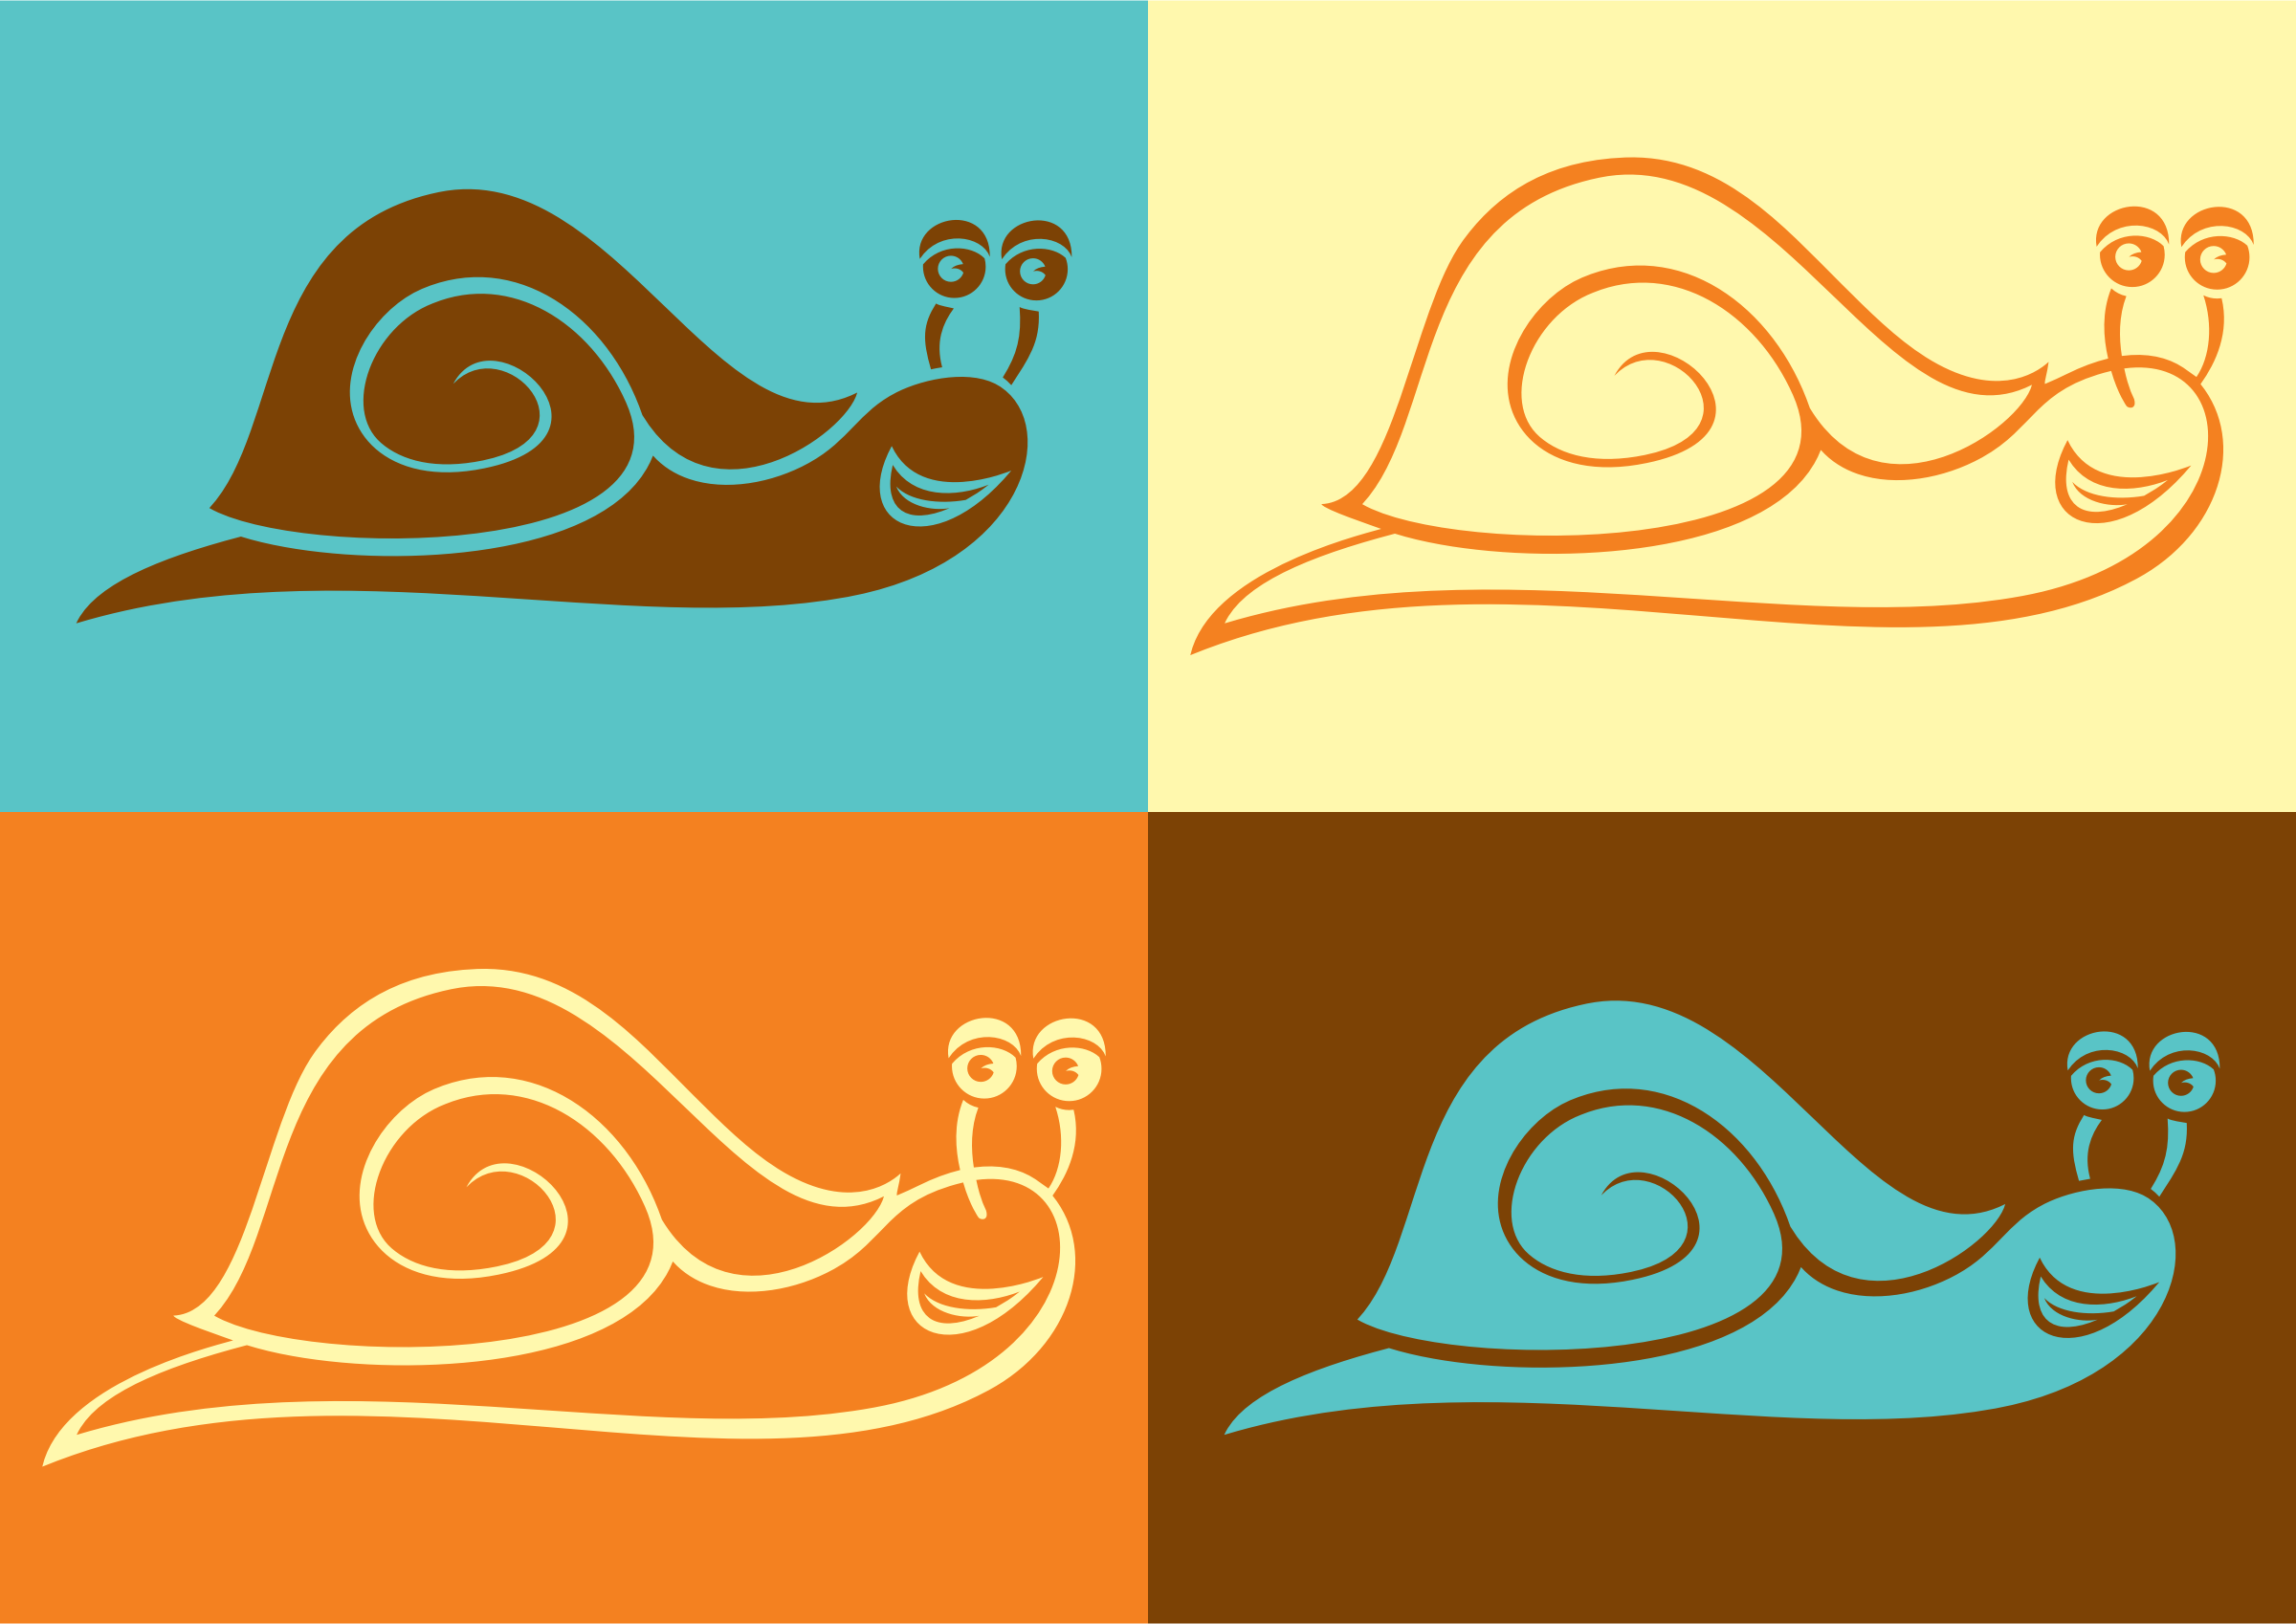 Snail Line Art by GDJ